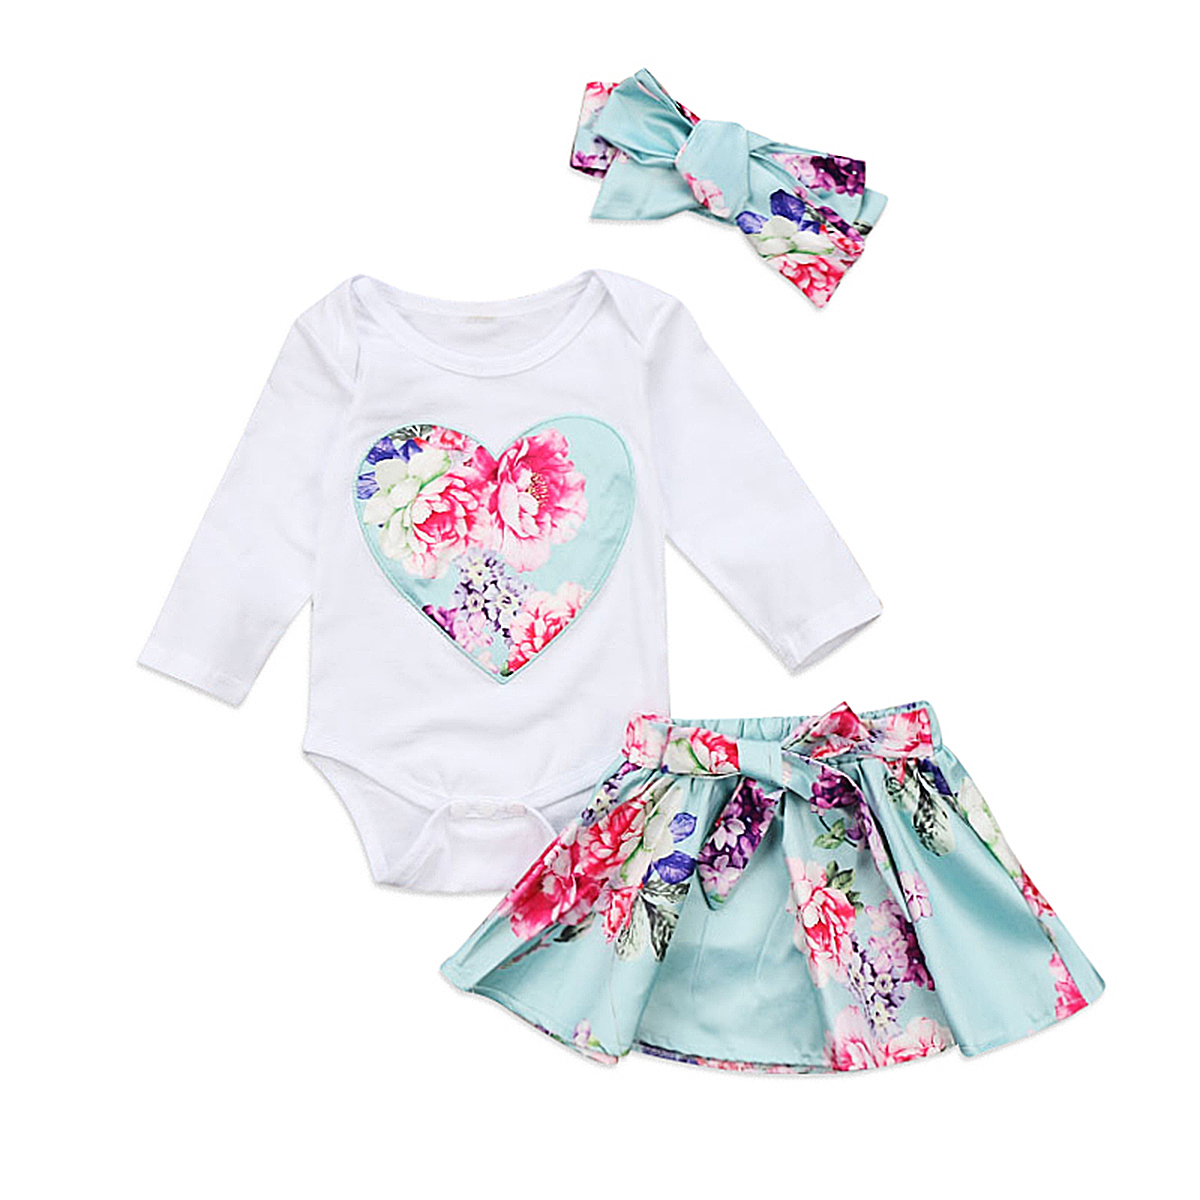 Fashion Baby Girls Clothes Newborn Kid Baby Girl Floral Skirts Infant Baby Girls Jumpsuit Long Sleeve Romper Headwear Outfits